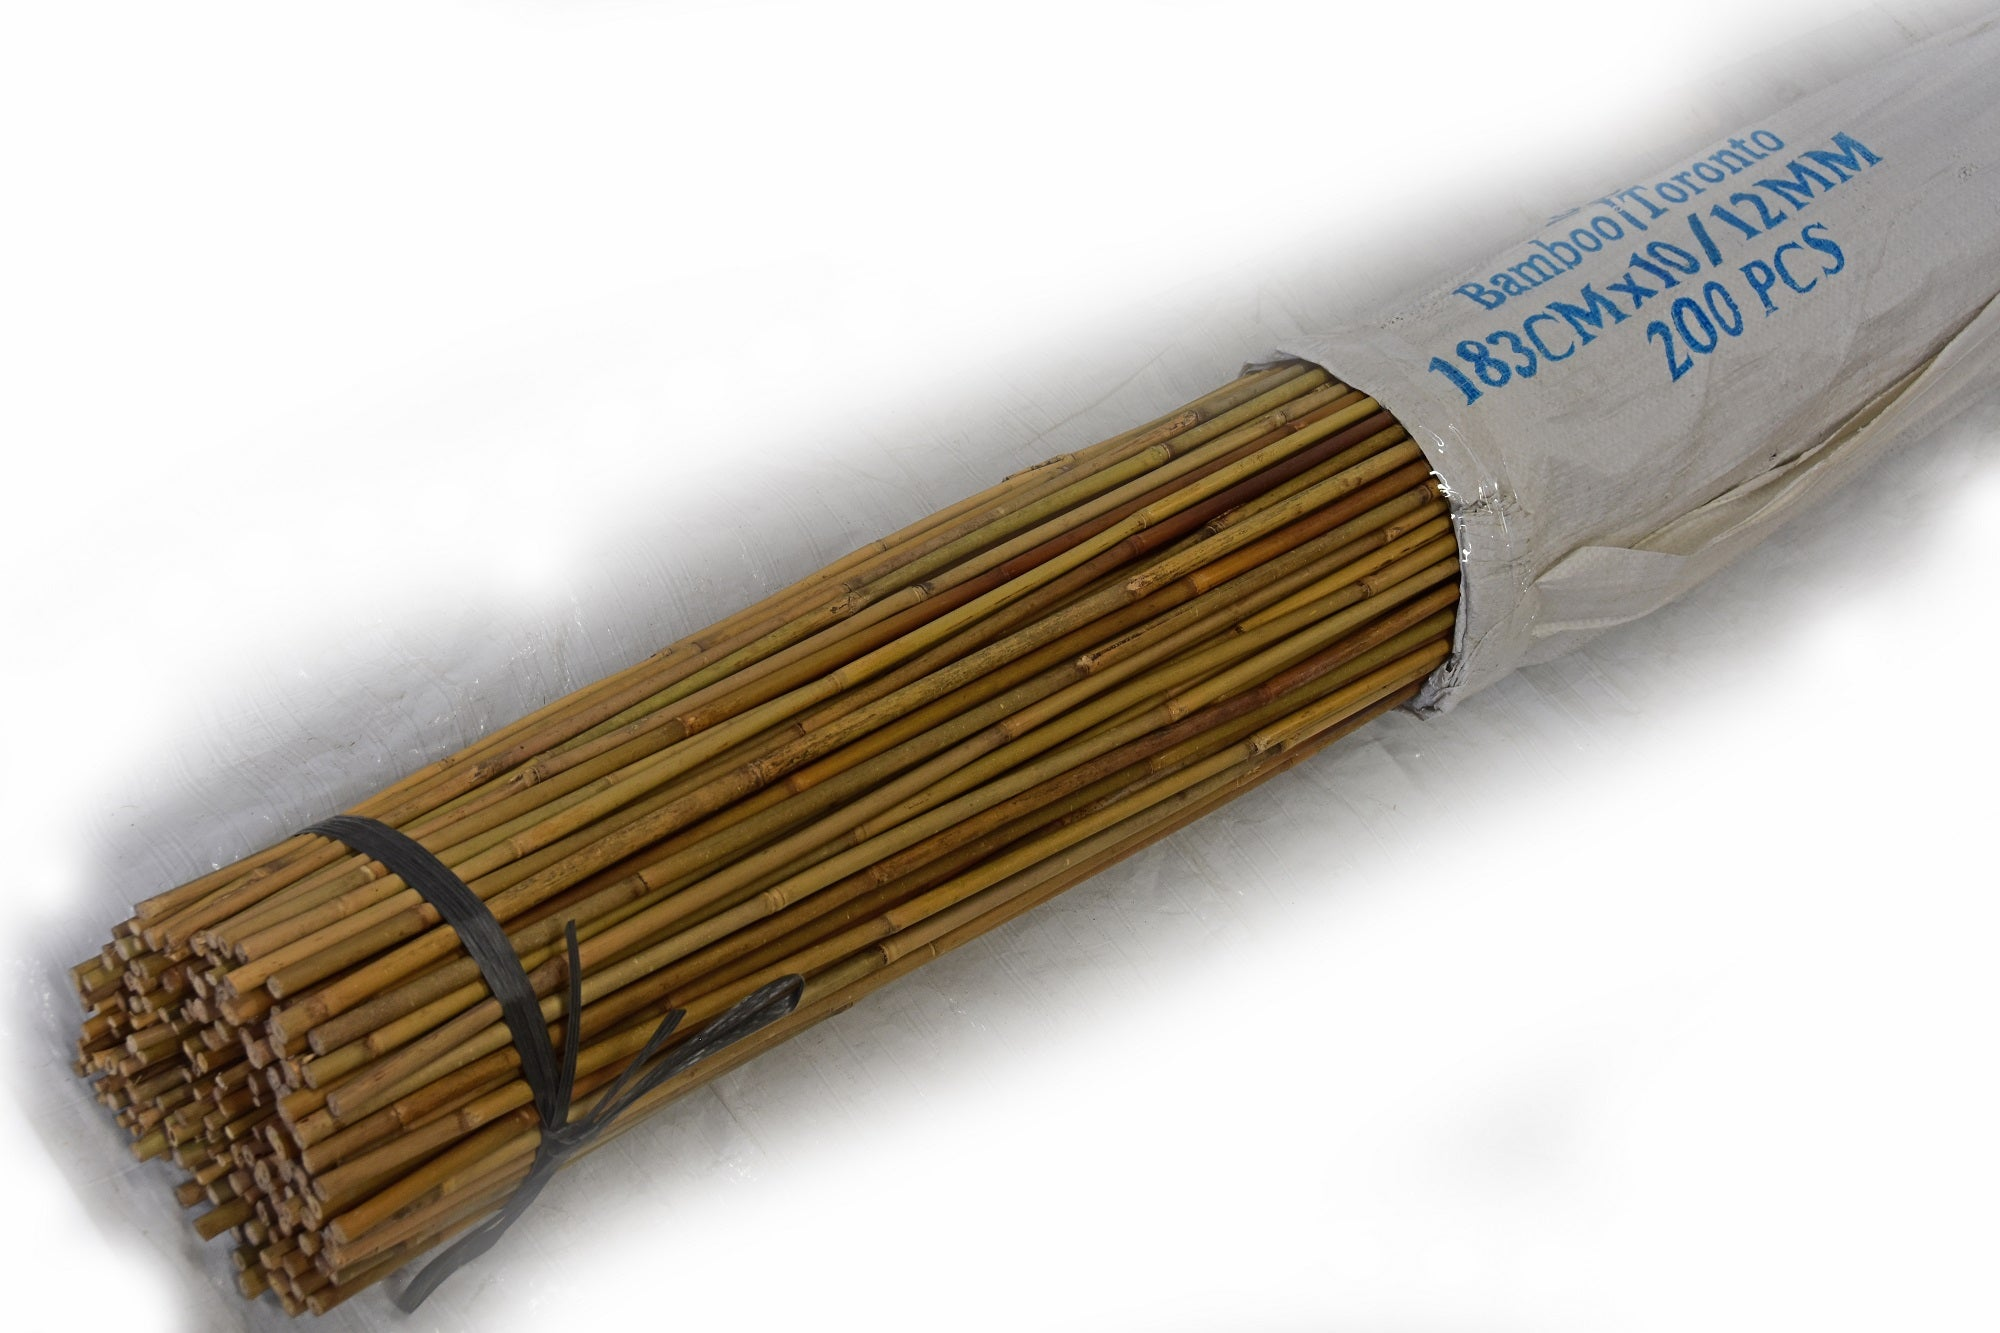 Tonkin Bamboo Pole 10-12mm x 5' Bundle of 250